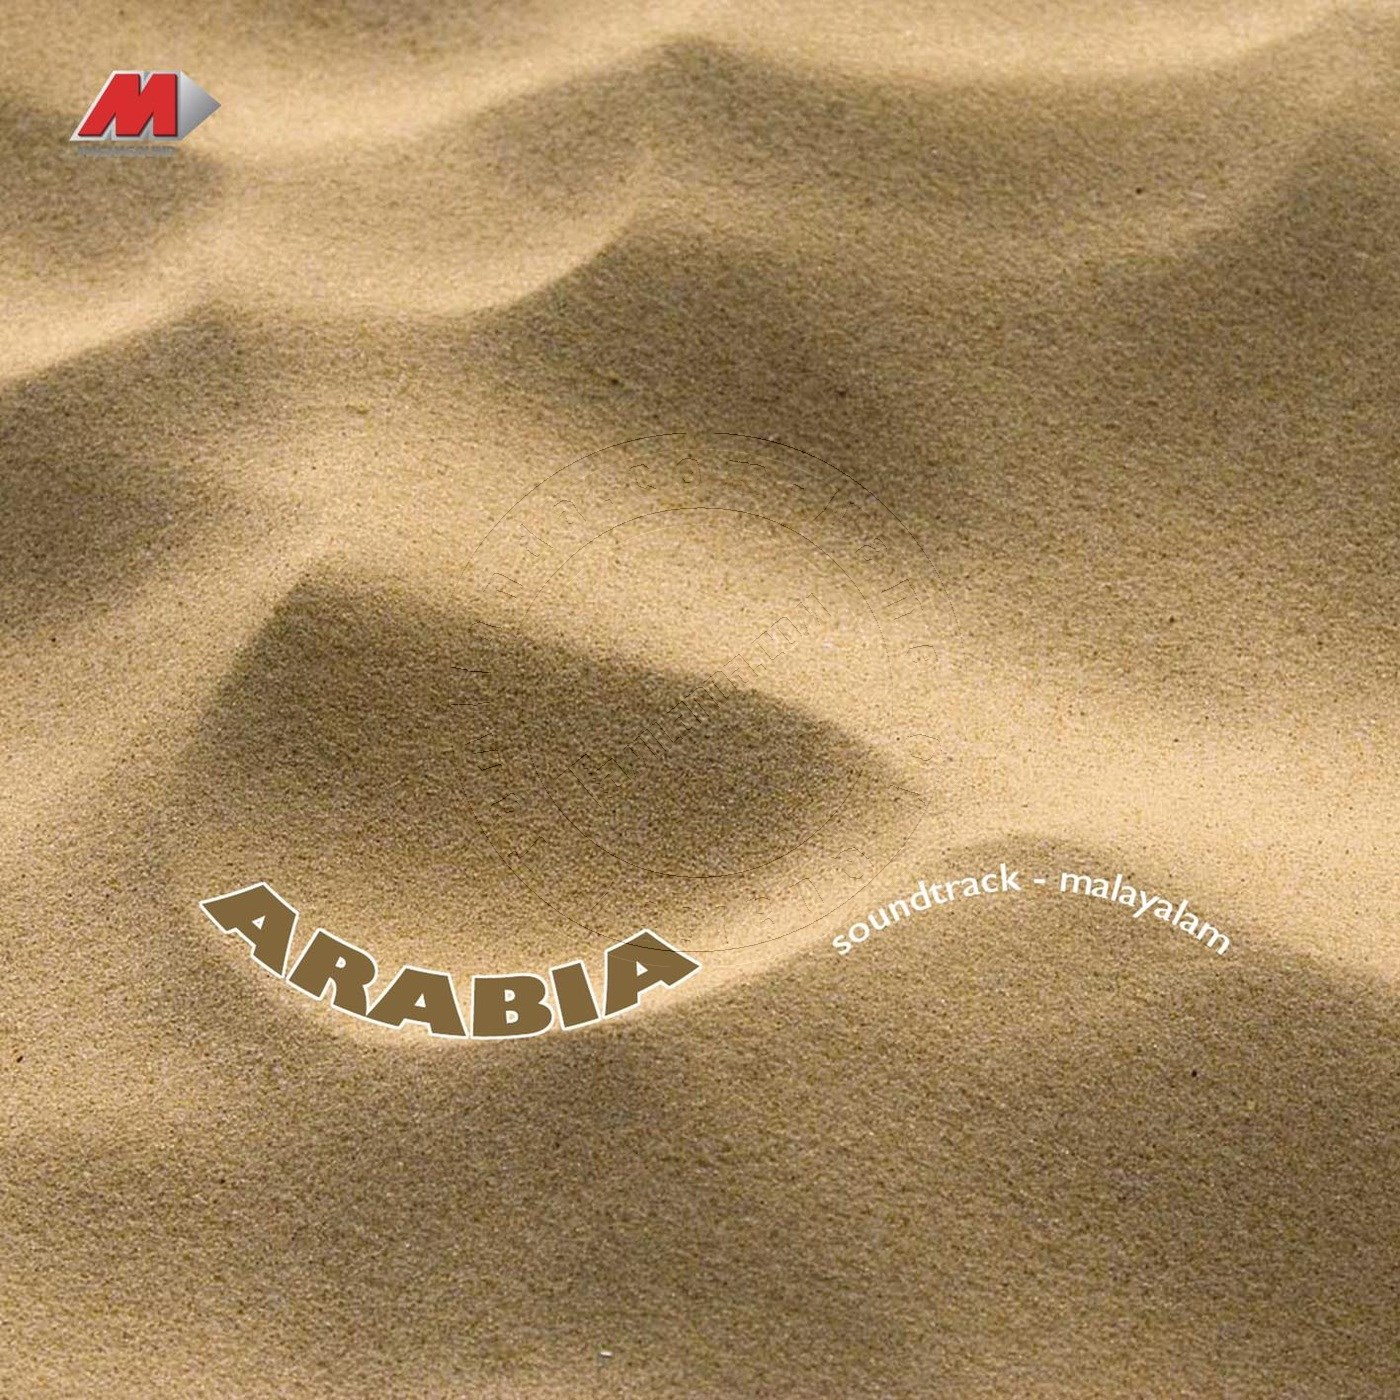 Arabia FLAC Songs